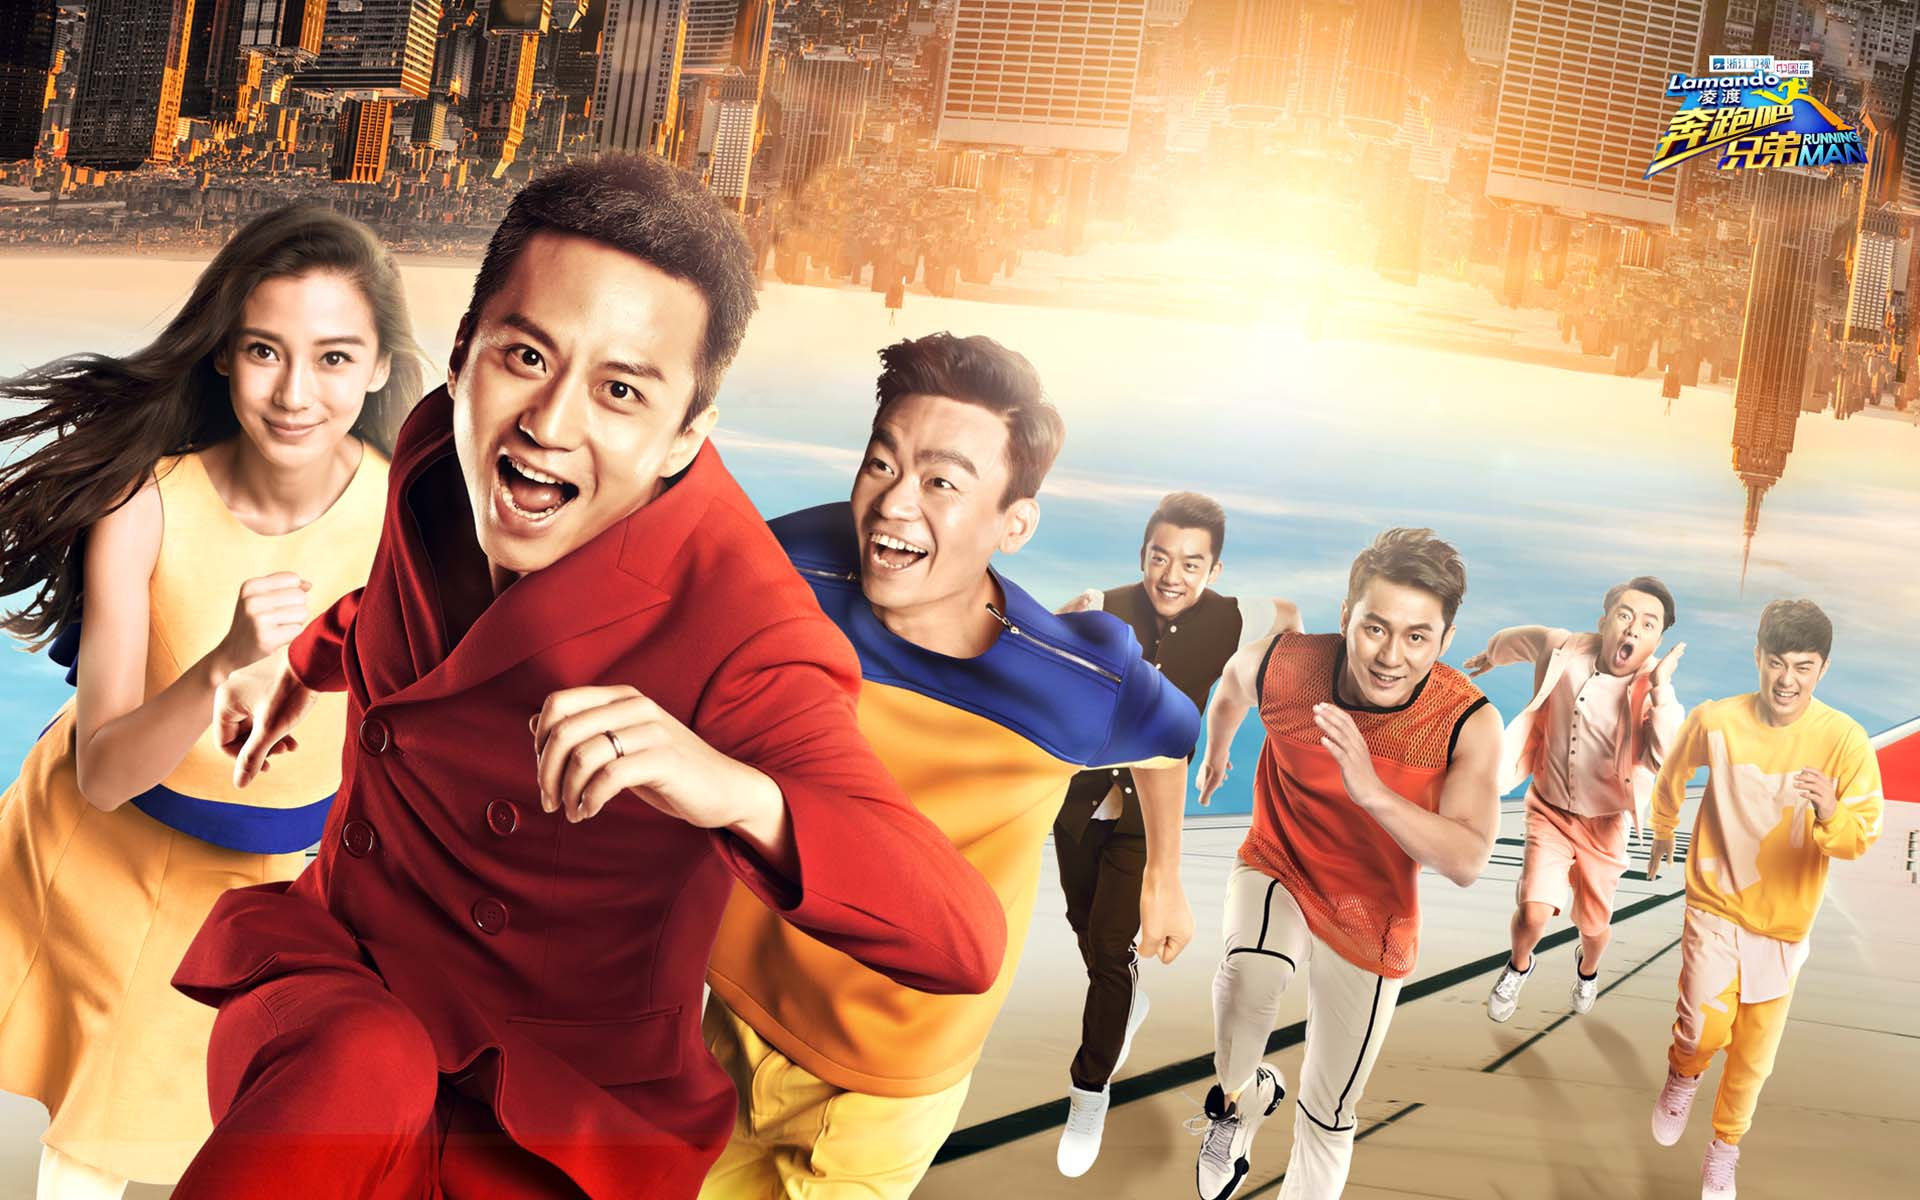 China's love for variety shows means a marketing race for brands